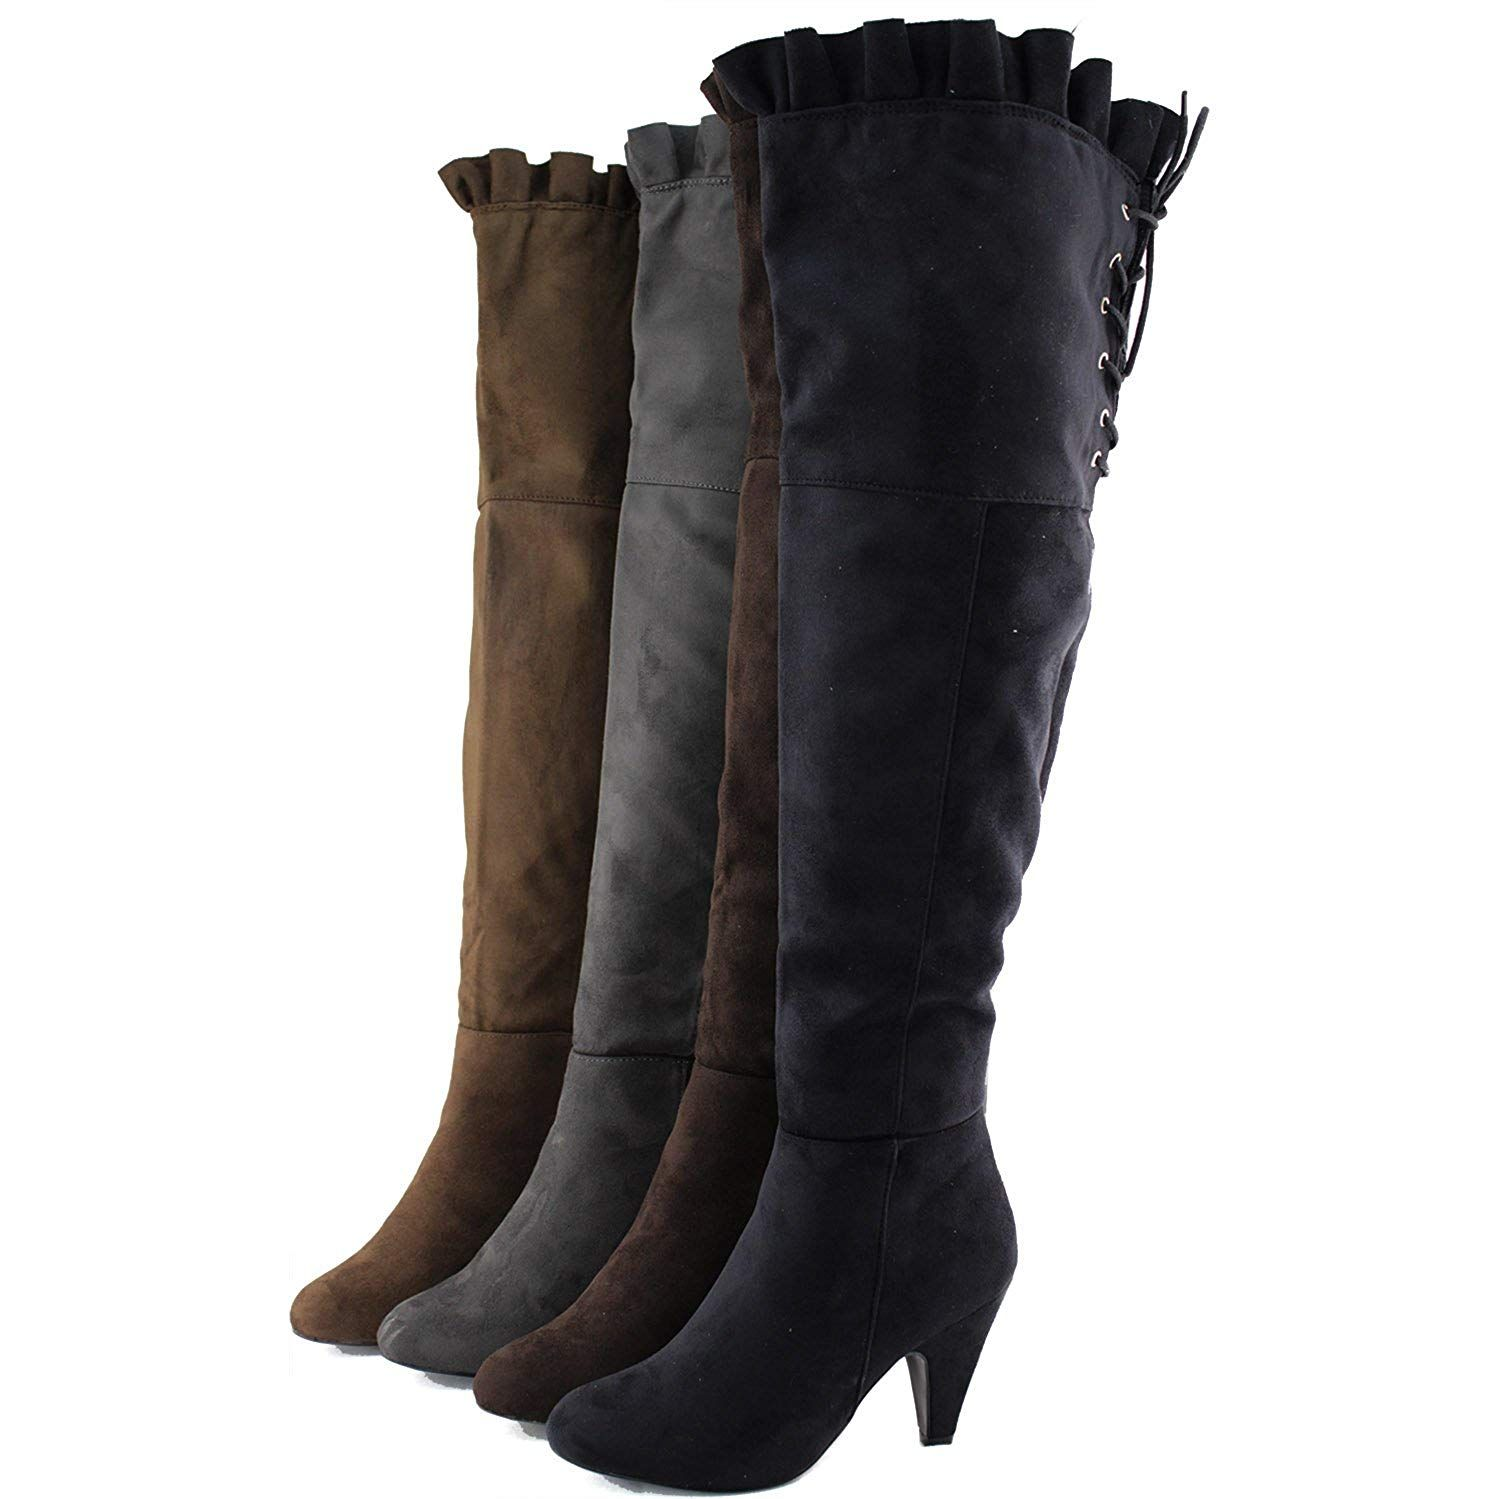 c6ec784cc7cf Women's Over The Knee High Lace Up Back Faux Suede Chunky High Heel Slouch Thigh  High Boots Fashion Shoes *** Want additional info? Click on the image.